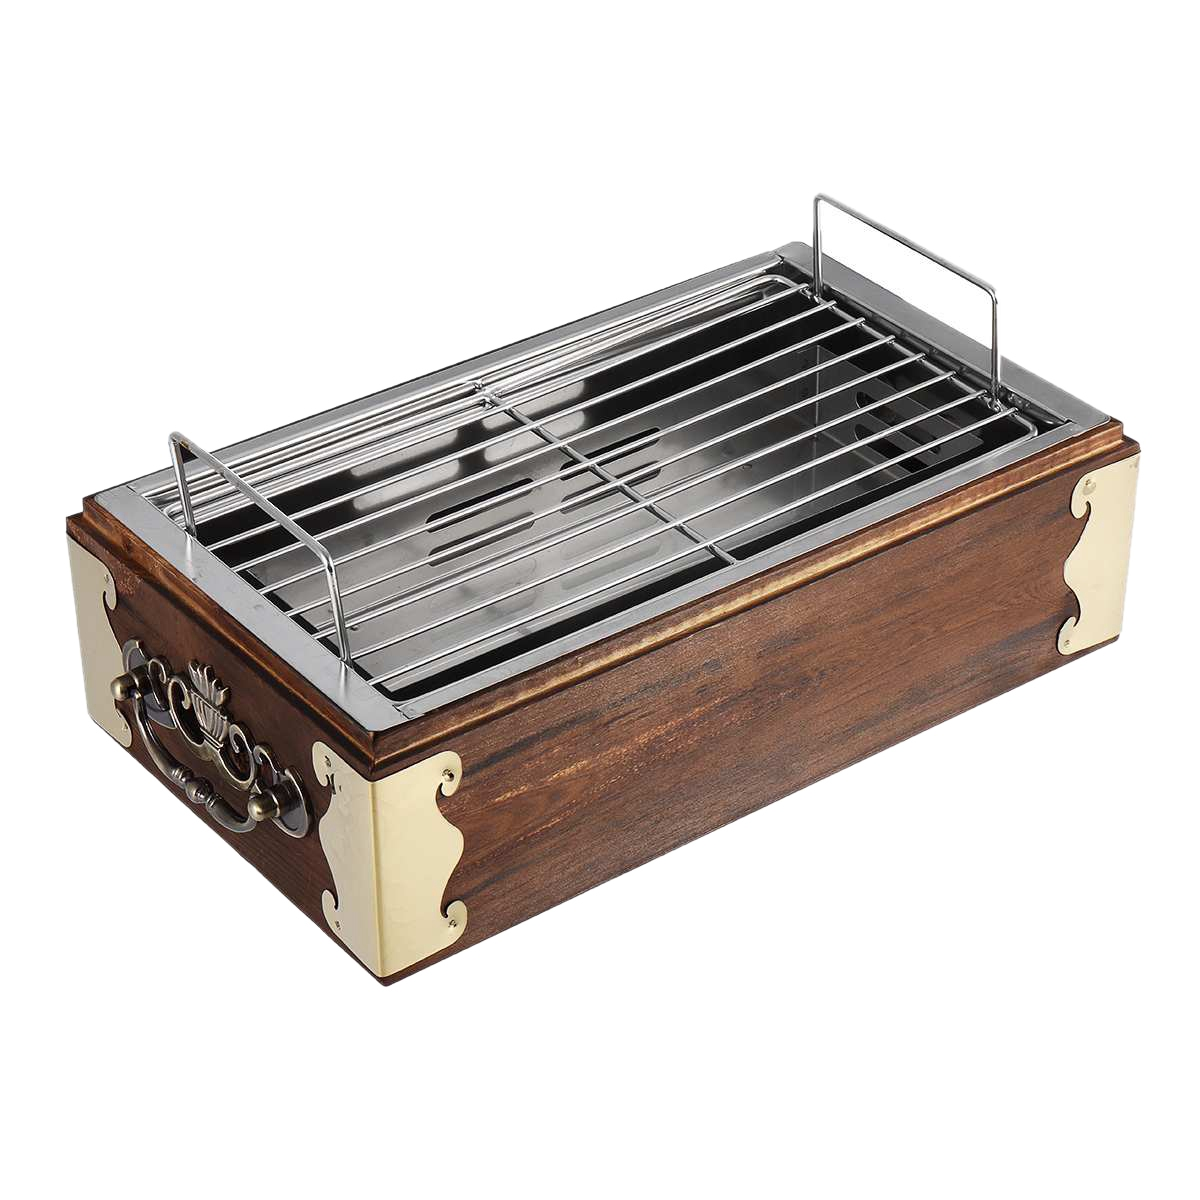 Portable Wood Stainless Steel Charcoal Grill